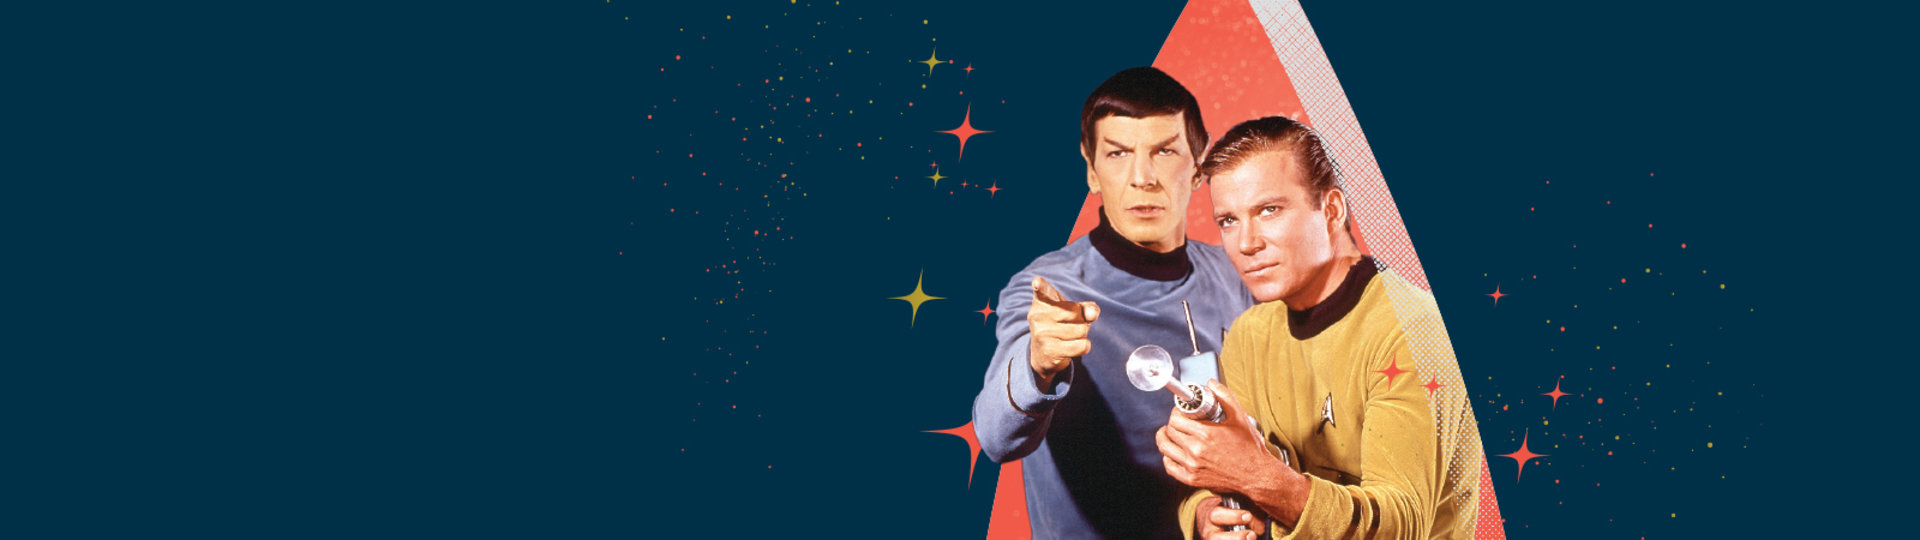 kirk and spock on blue background